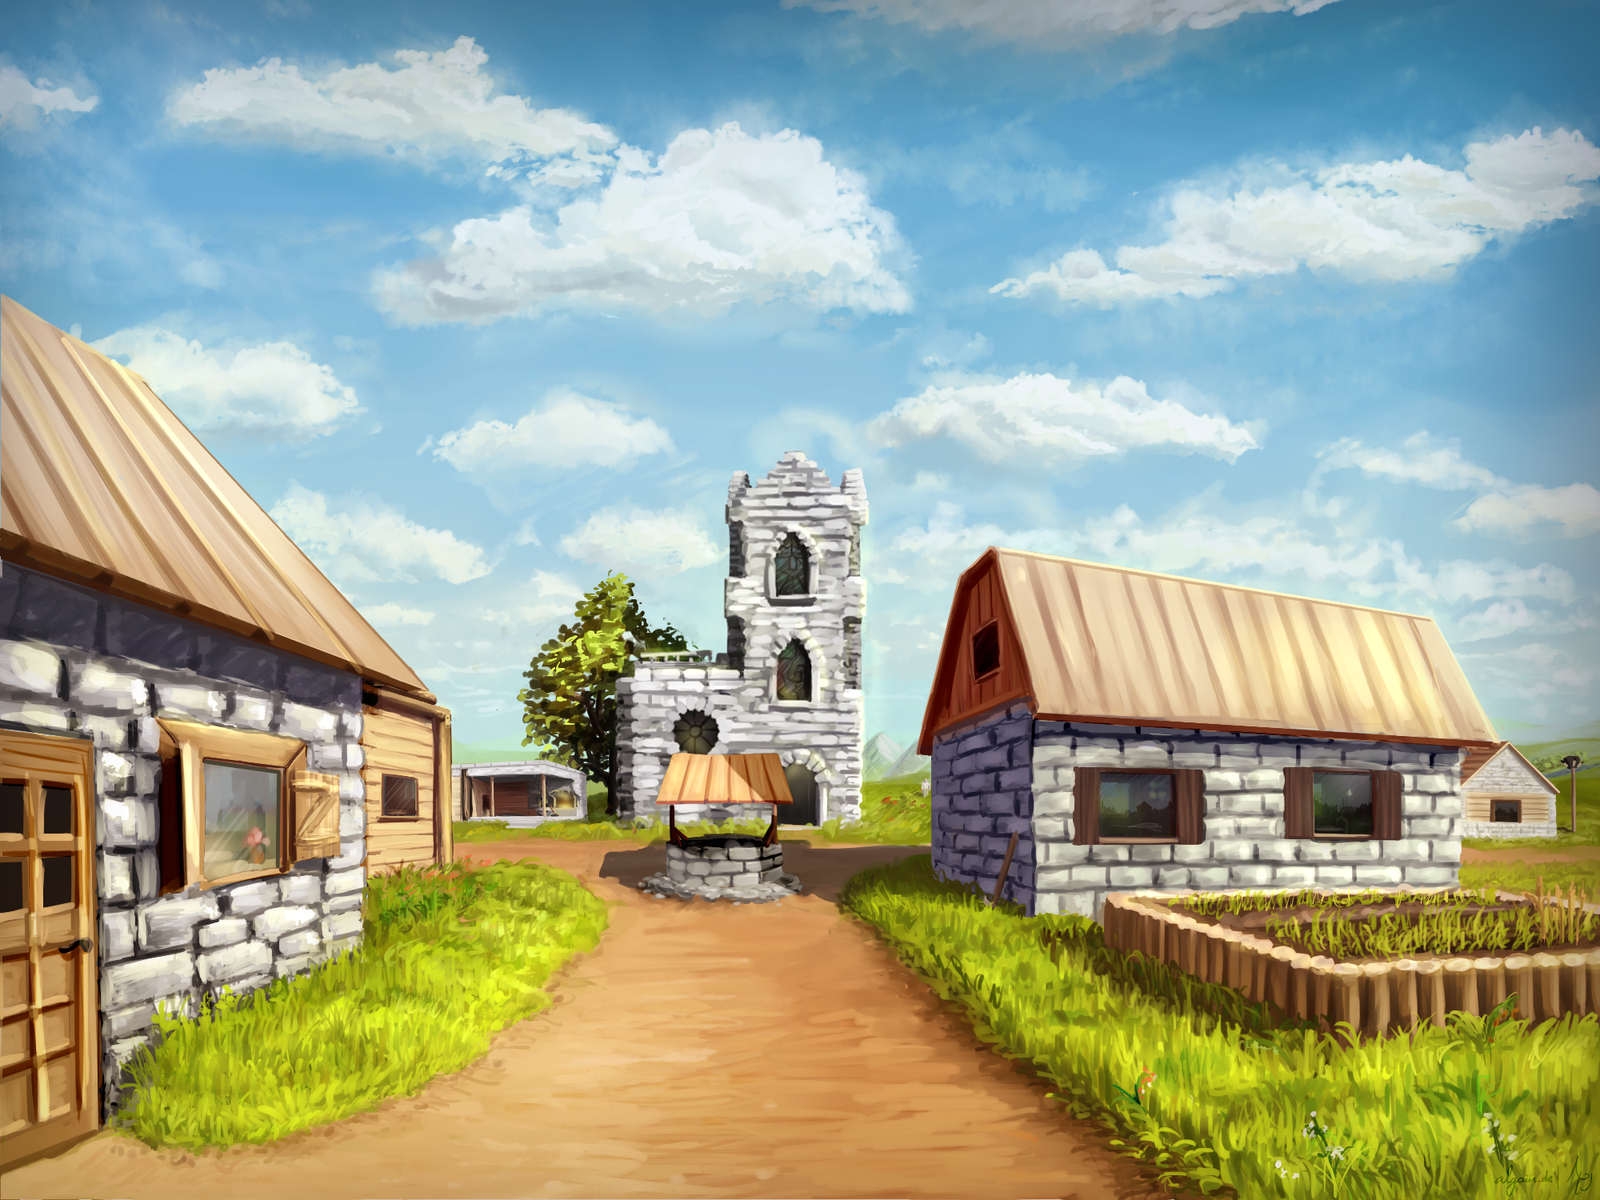 High Resolution Wallpaper | Village 1600x1200 px